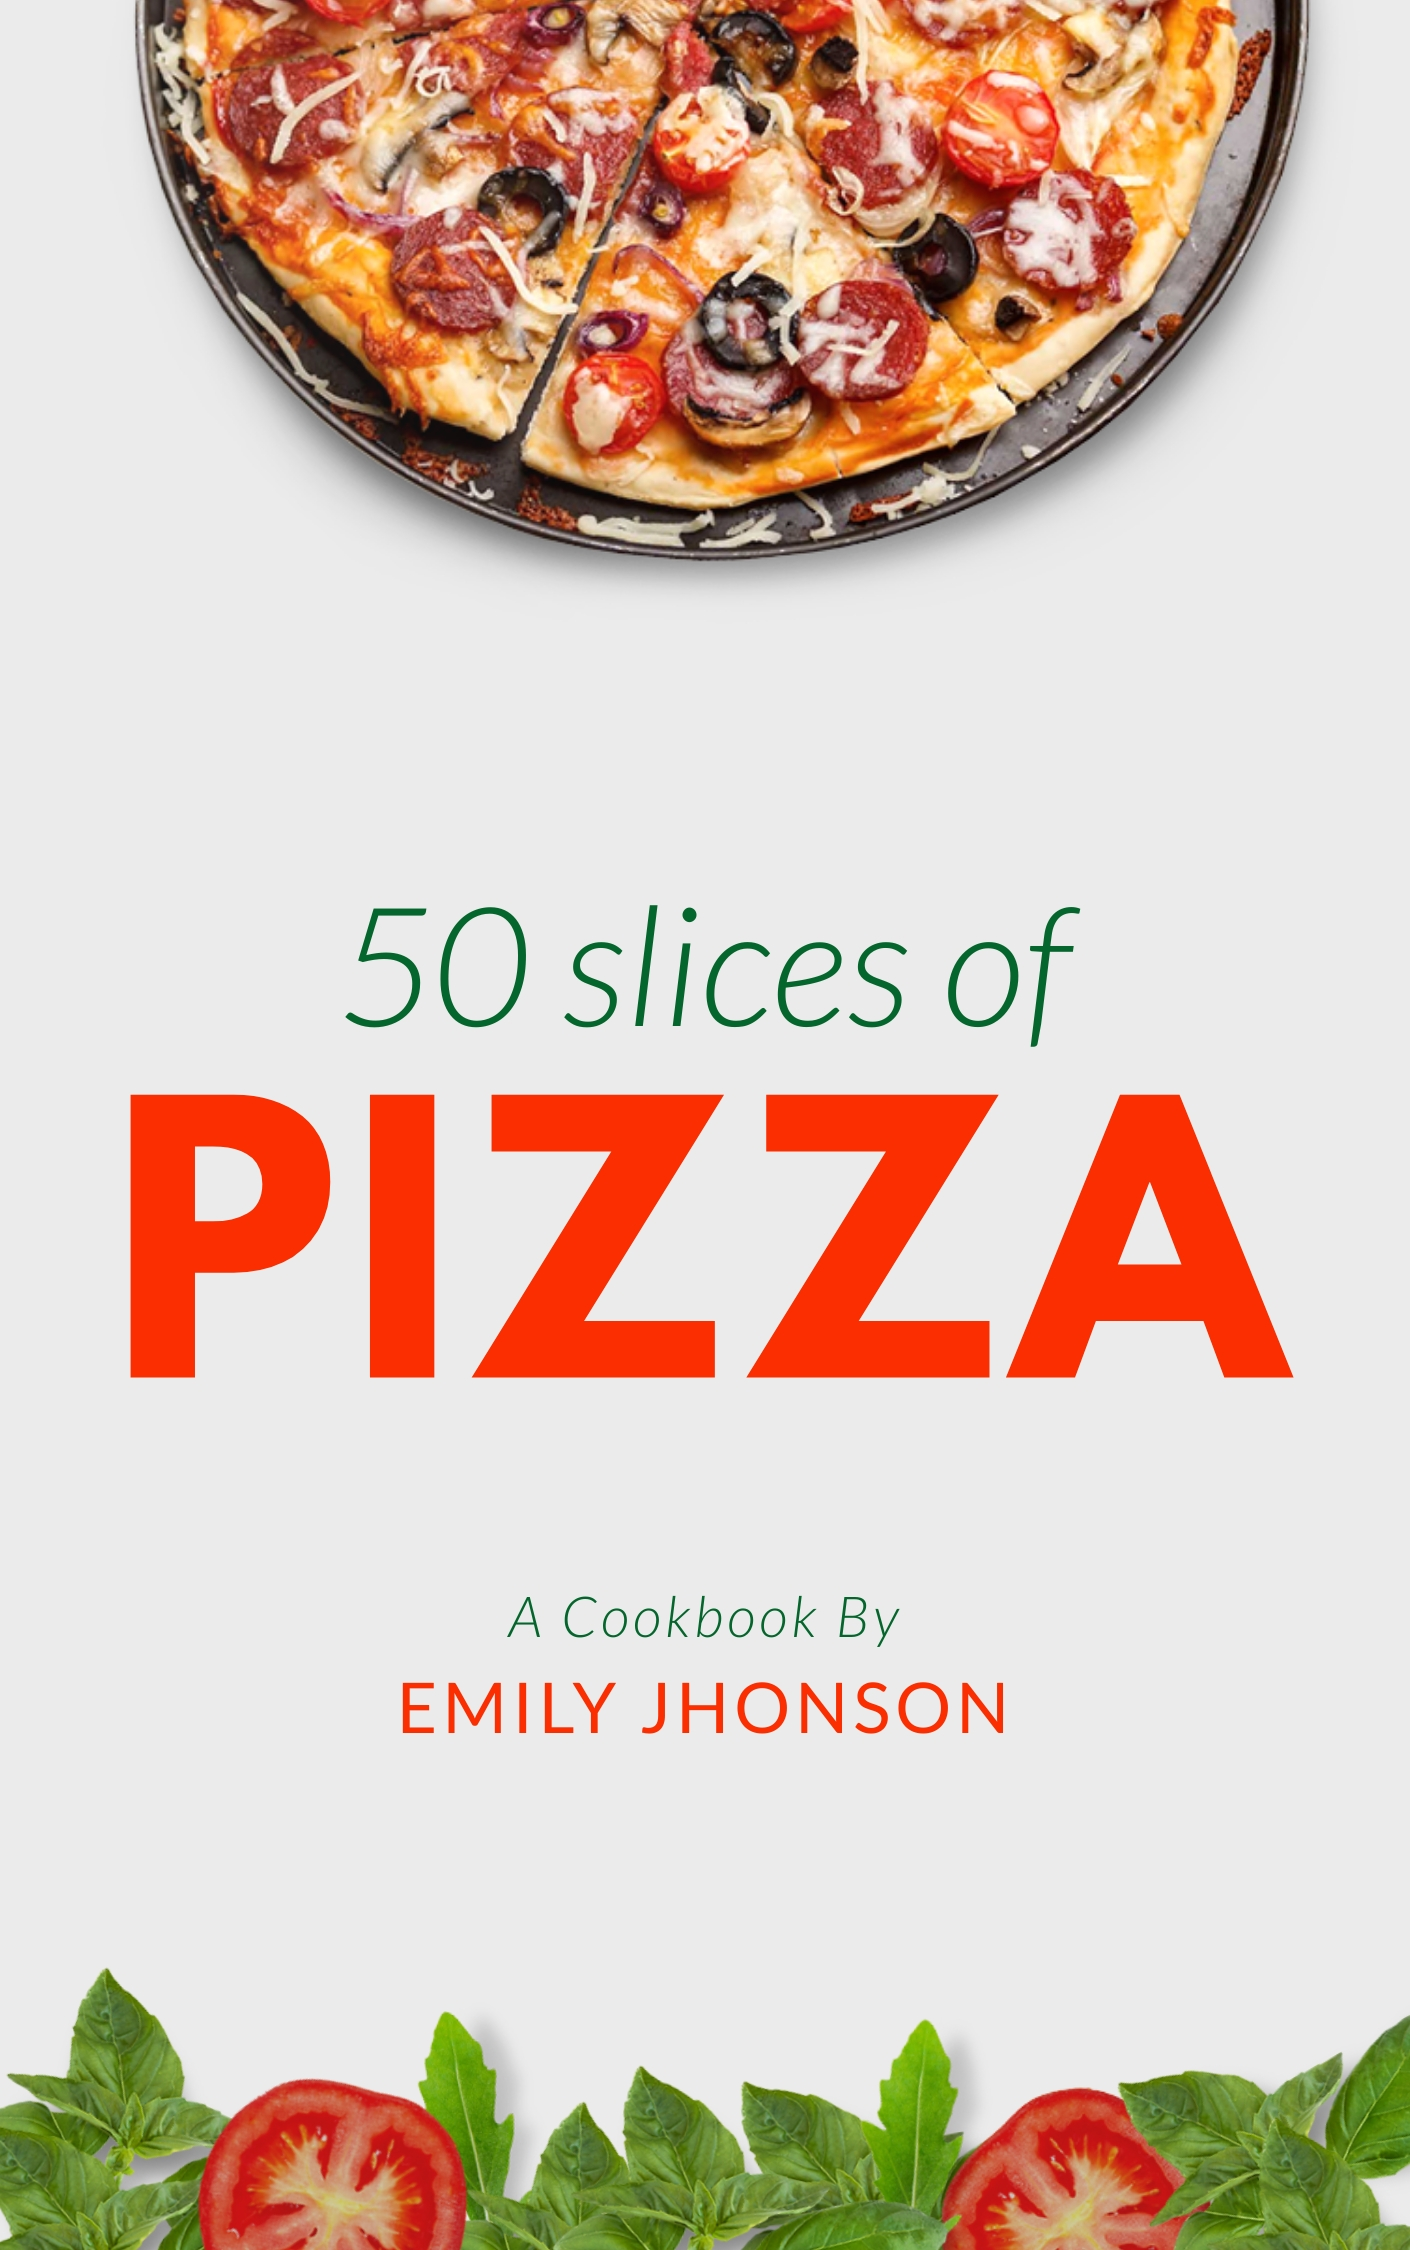 Pizza Cook Book - Book Cover Template